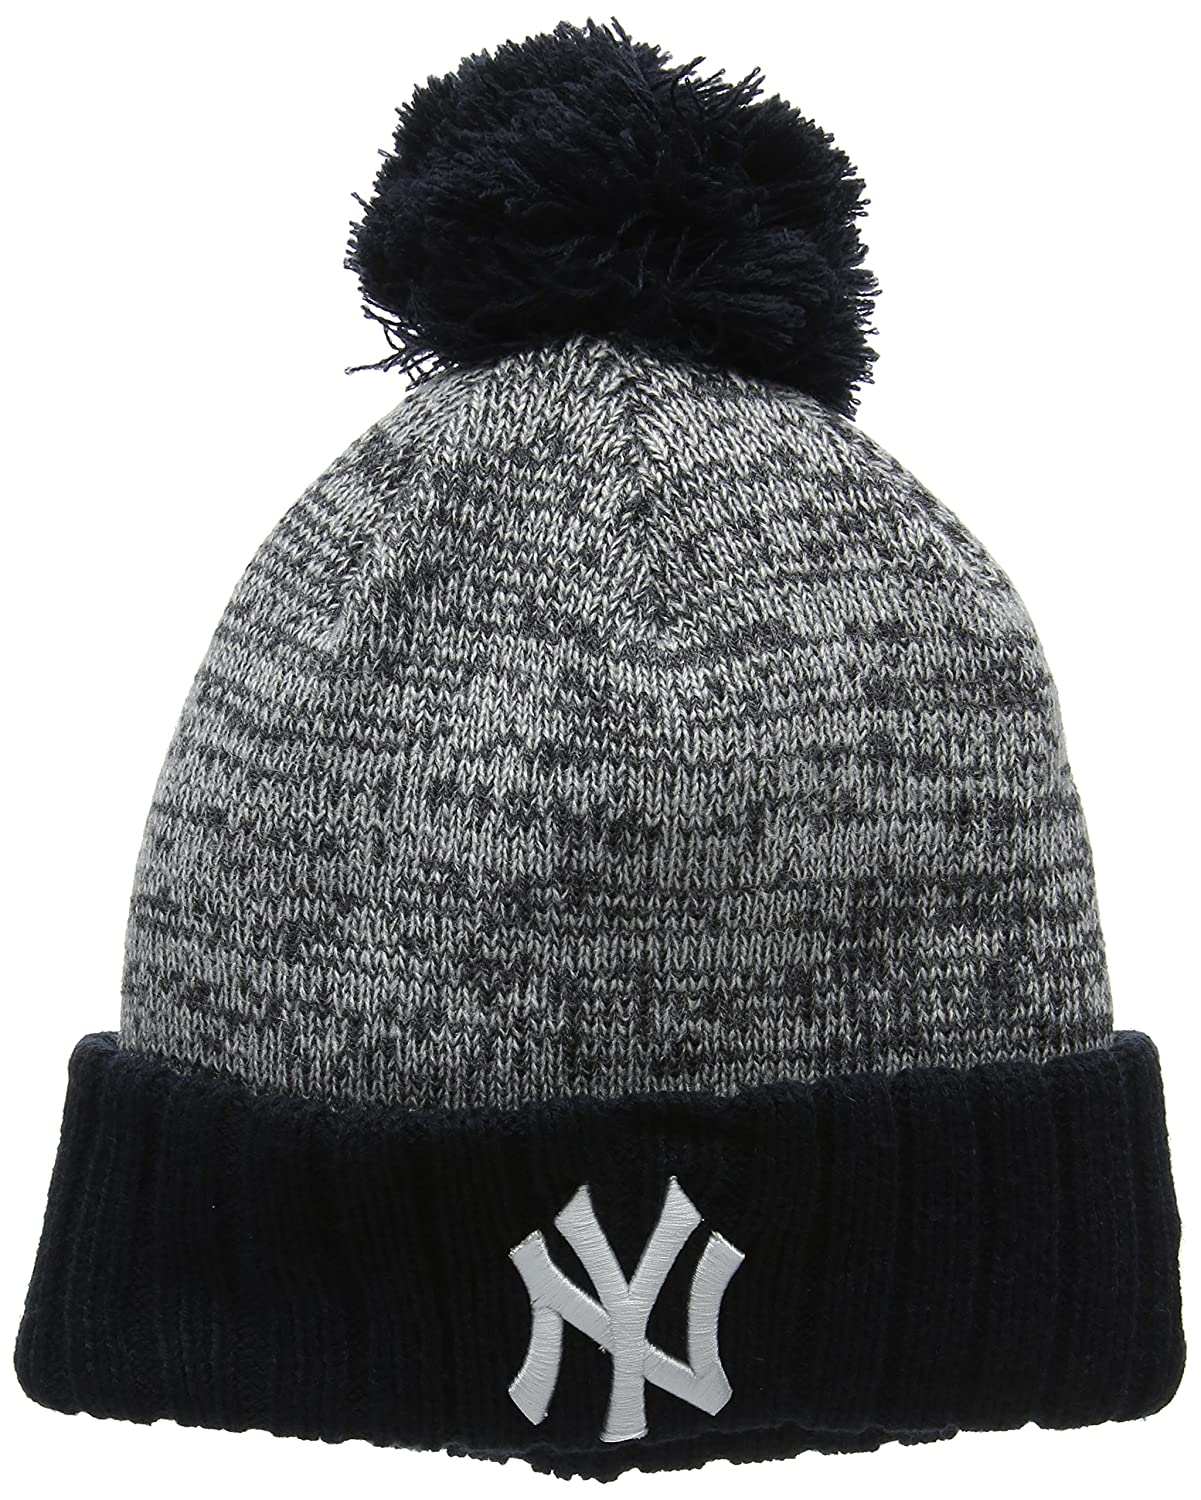 3e73cdb50c9 shop new era lightweight felt bobble new york yankees hat 3cd52 8483e   czech new era mens heather bobble knit ny yankees beanie grey grey one size  ...